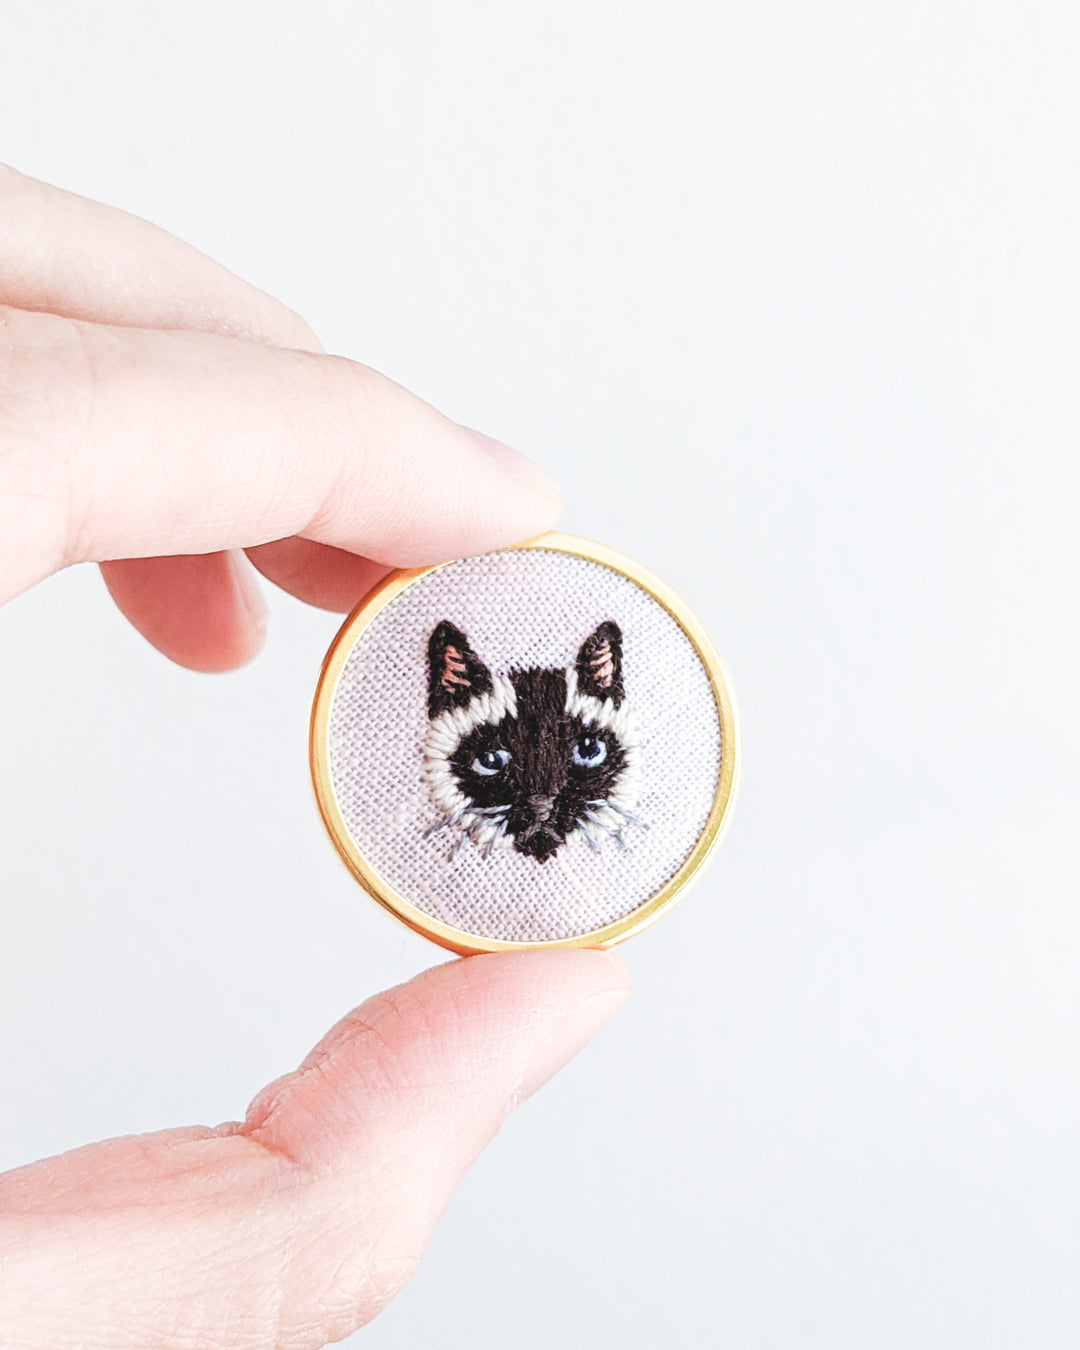 Embroidered Cat Pin - Siamese, seal-point